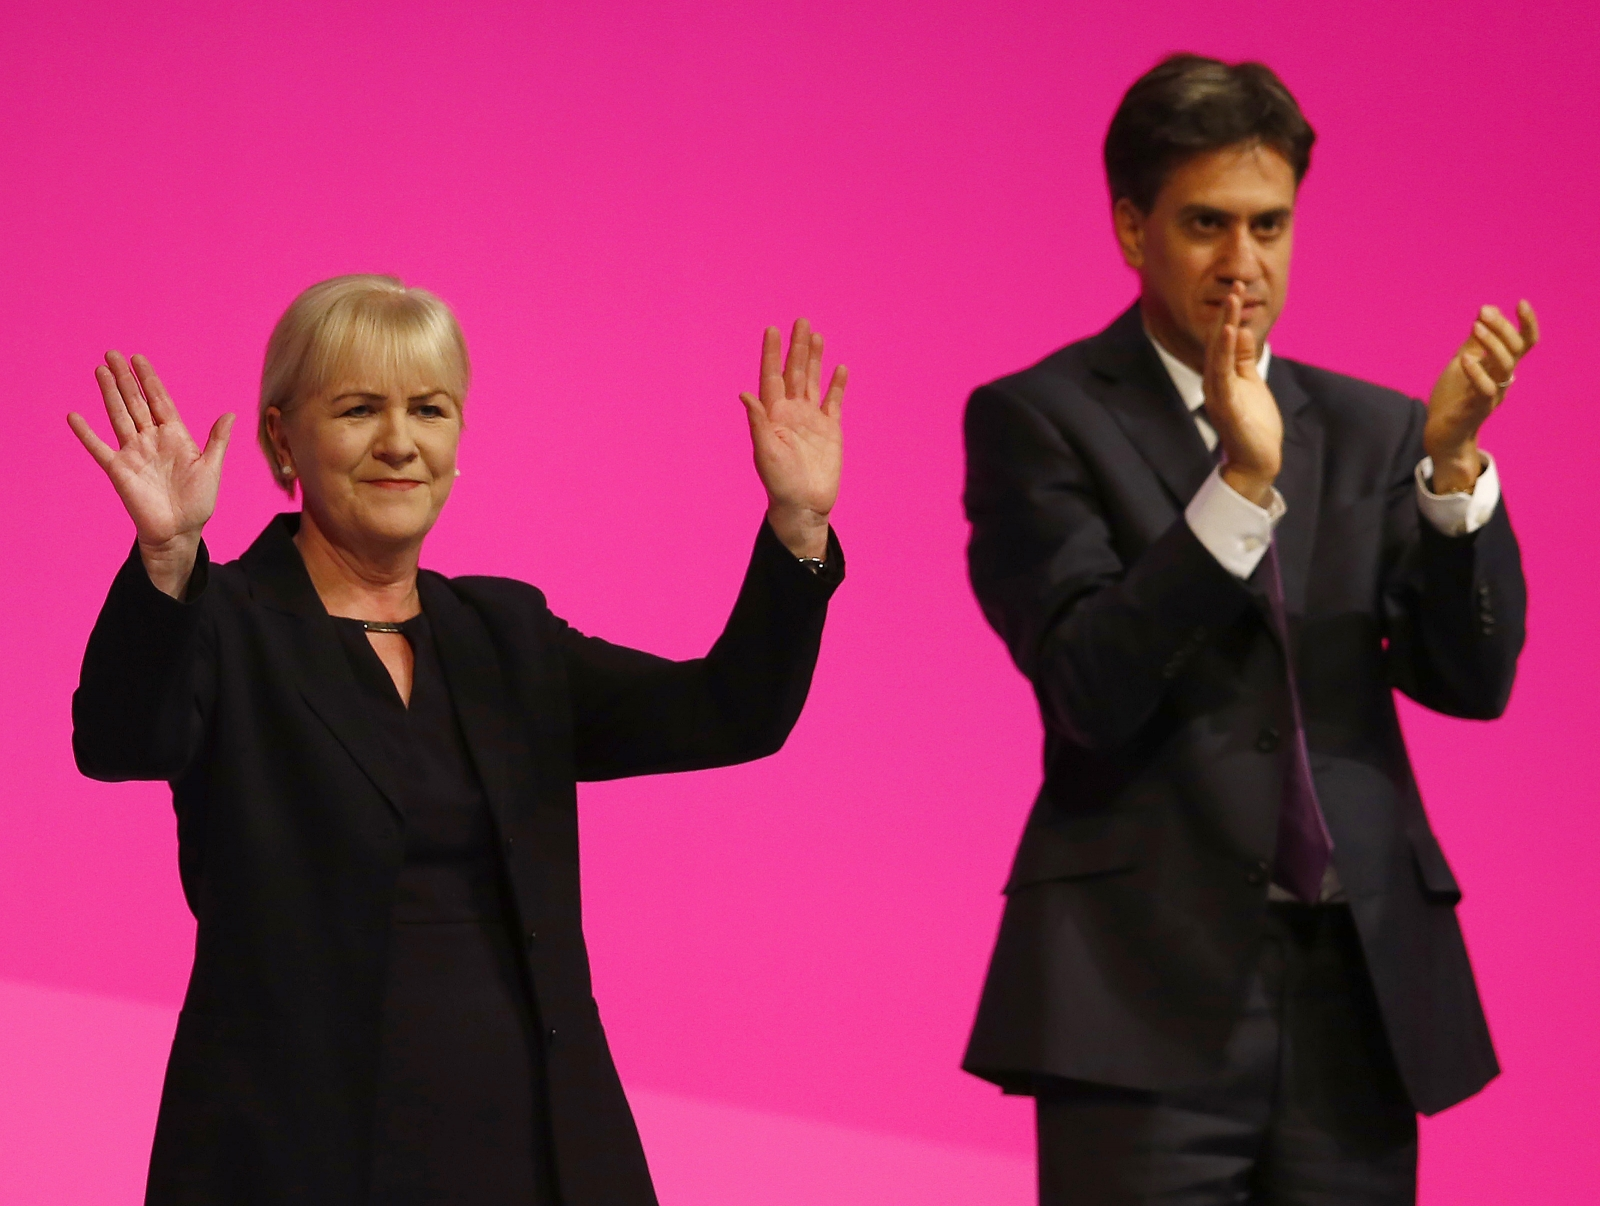 Britain's opposition Labour Party leader Ed Miliband (R) applauds Scottish Labour Party leader Johann Lamont during Labour's annual conference in Manchester, northern England September 22, 2014